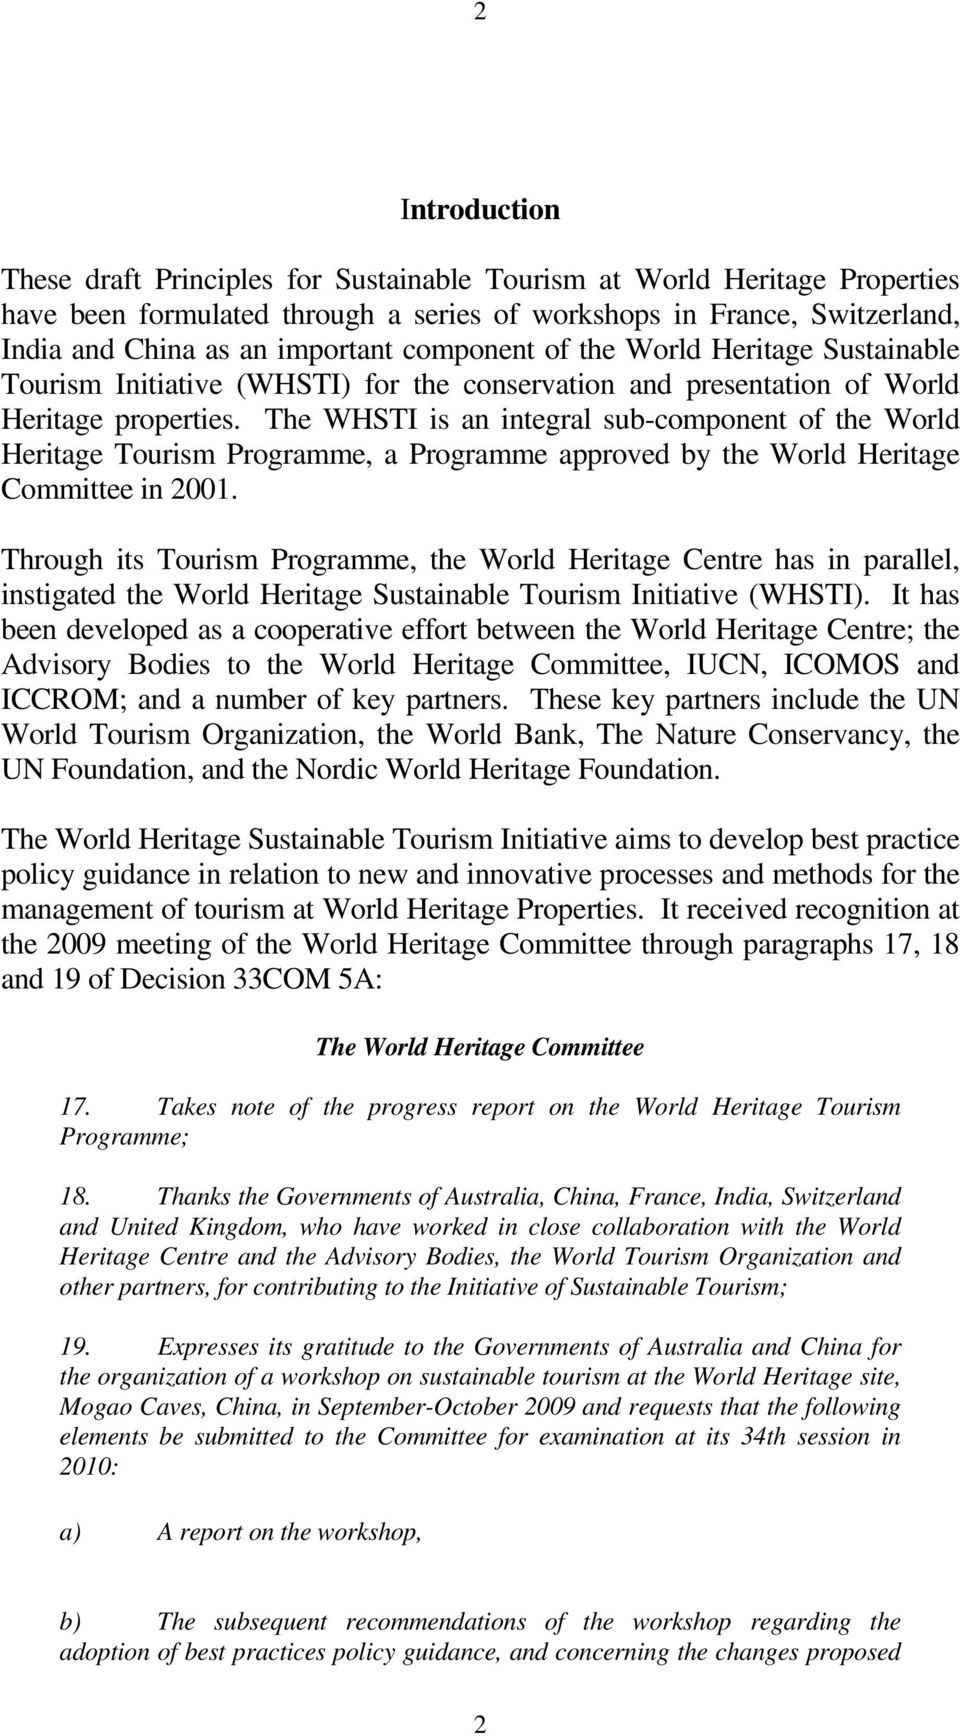 The WHSTI is an integral sub-component of the World Heritage Tourism Programme, a Programme approved by the World Heritage Committee in 2001.